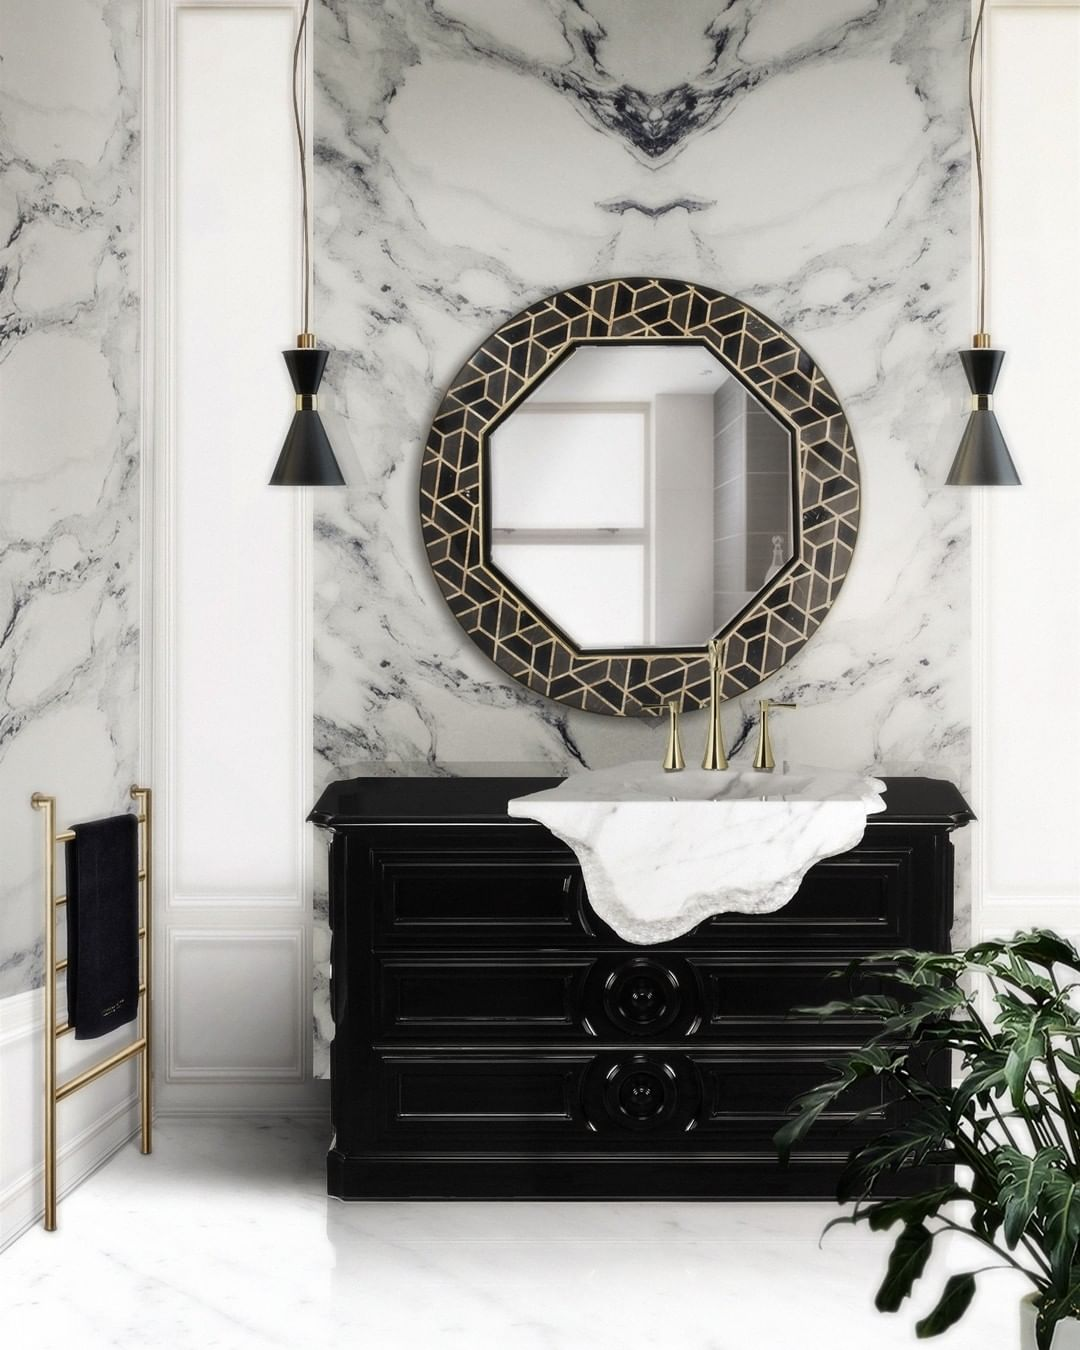 Grey Marble marble bathroom Marble Bathroom: 5 Luxury Incredible Ideas 156886901 428794201750727 2349671582962648355 n